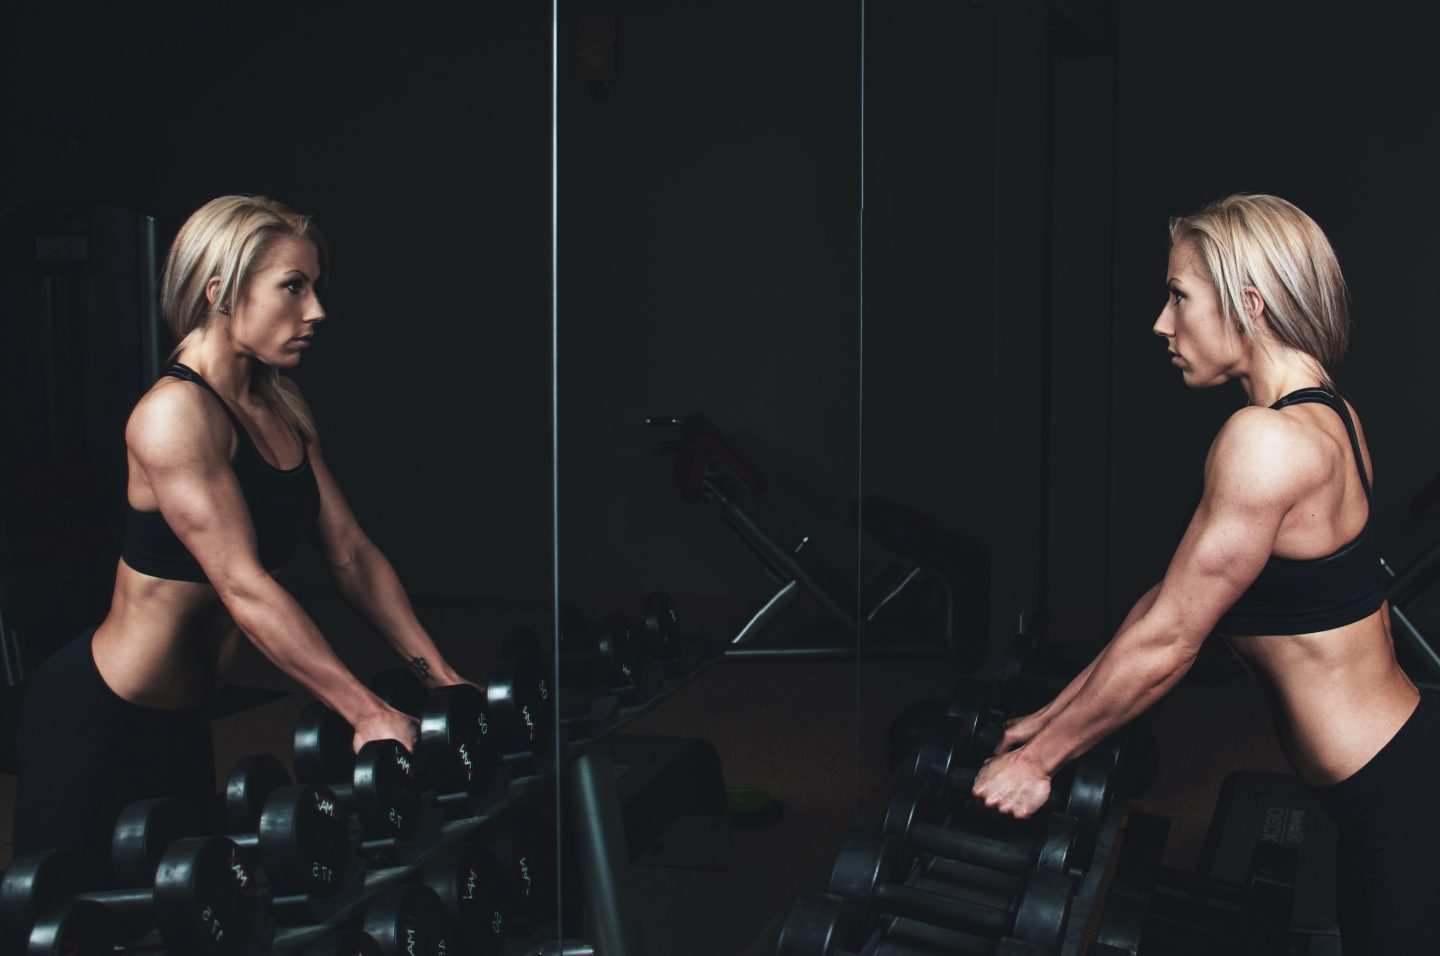 A strong woman looking at her reflection in the mirror in a dark gym, holding weights. self-reflection, self-awareness, body shape, fitness, GamePlan A.